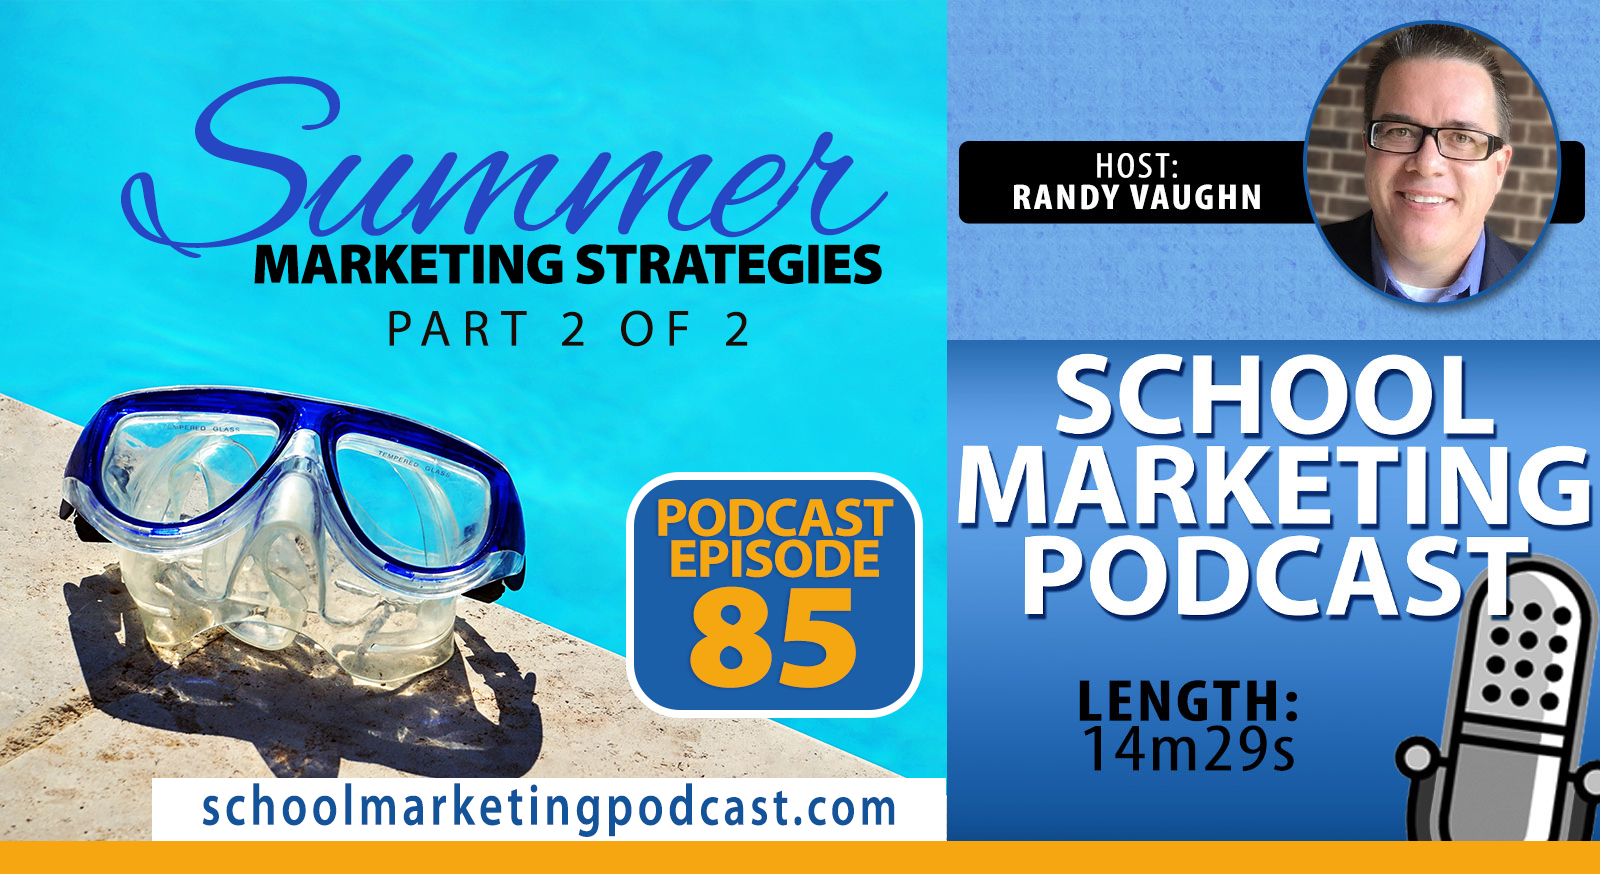 Summer Marketing Strategies for Schools - Part 2 of 2 (School Marketing Podcast #85)